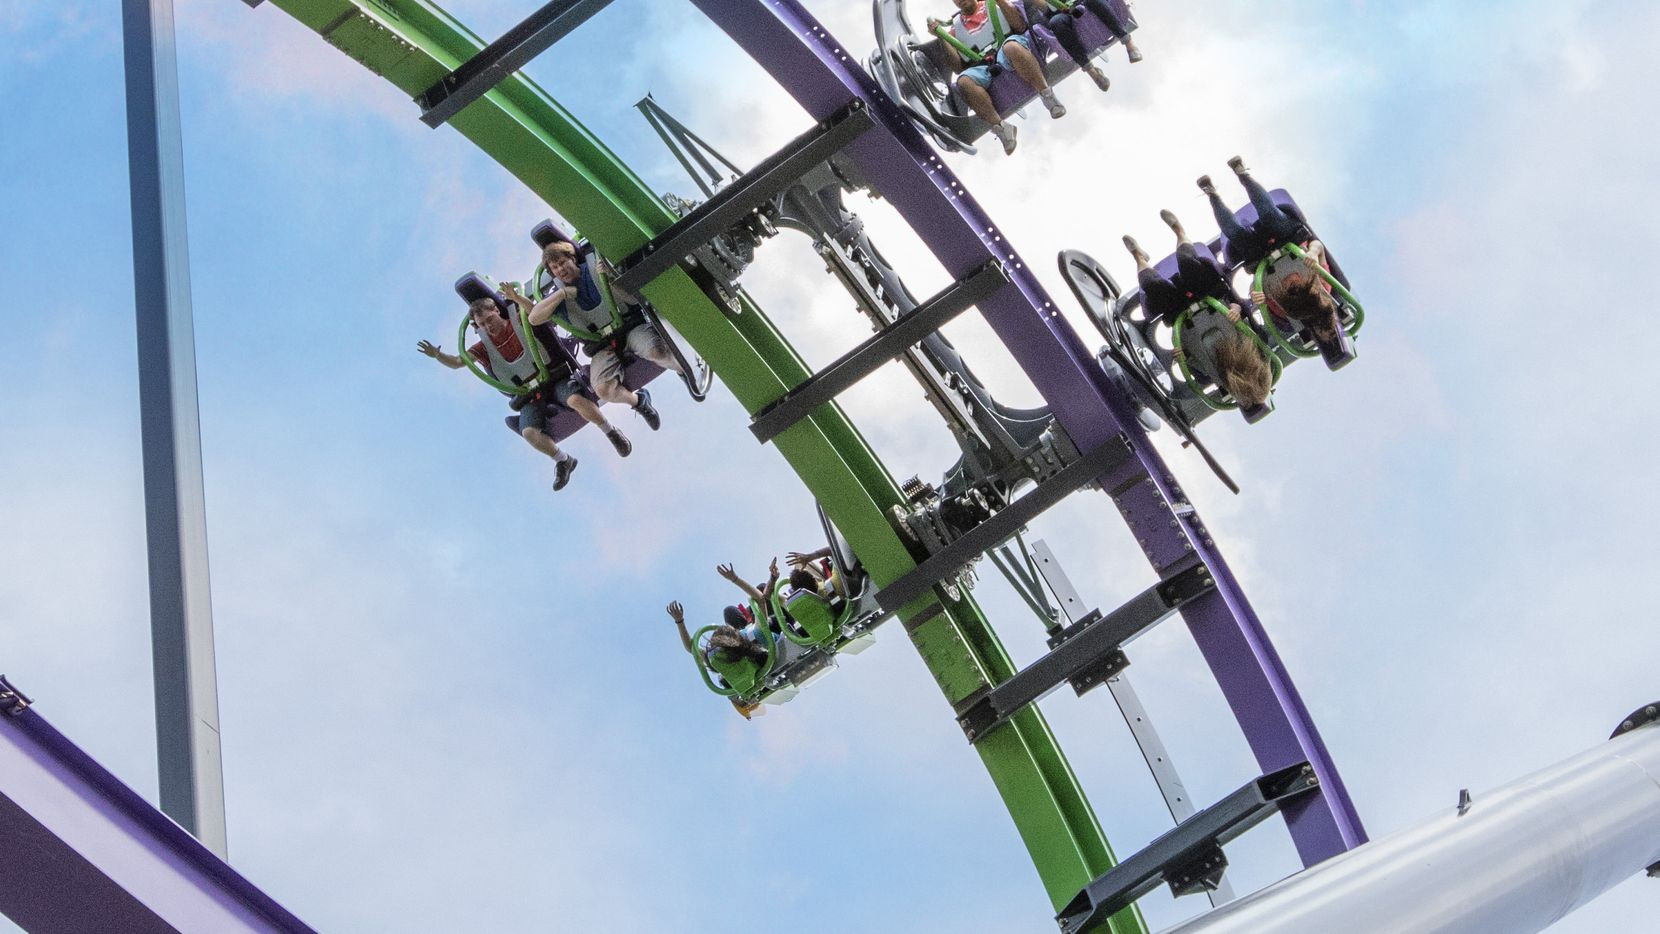 The Joker, a free-fly coaster, made its debut at Six Flags over Texas in 2017.